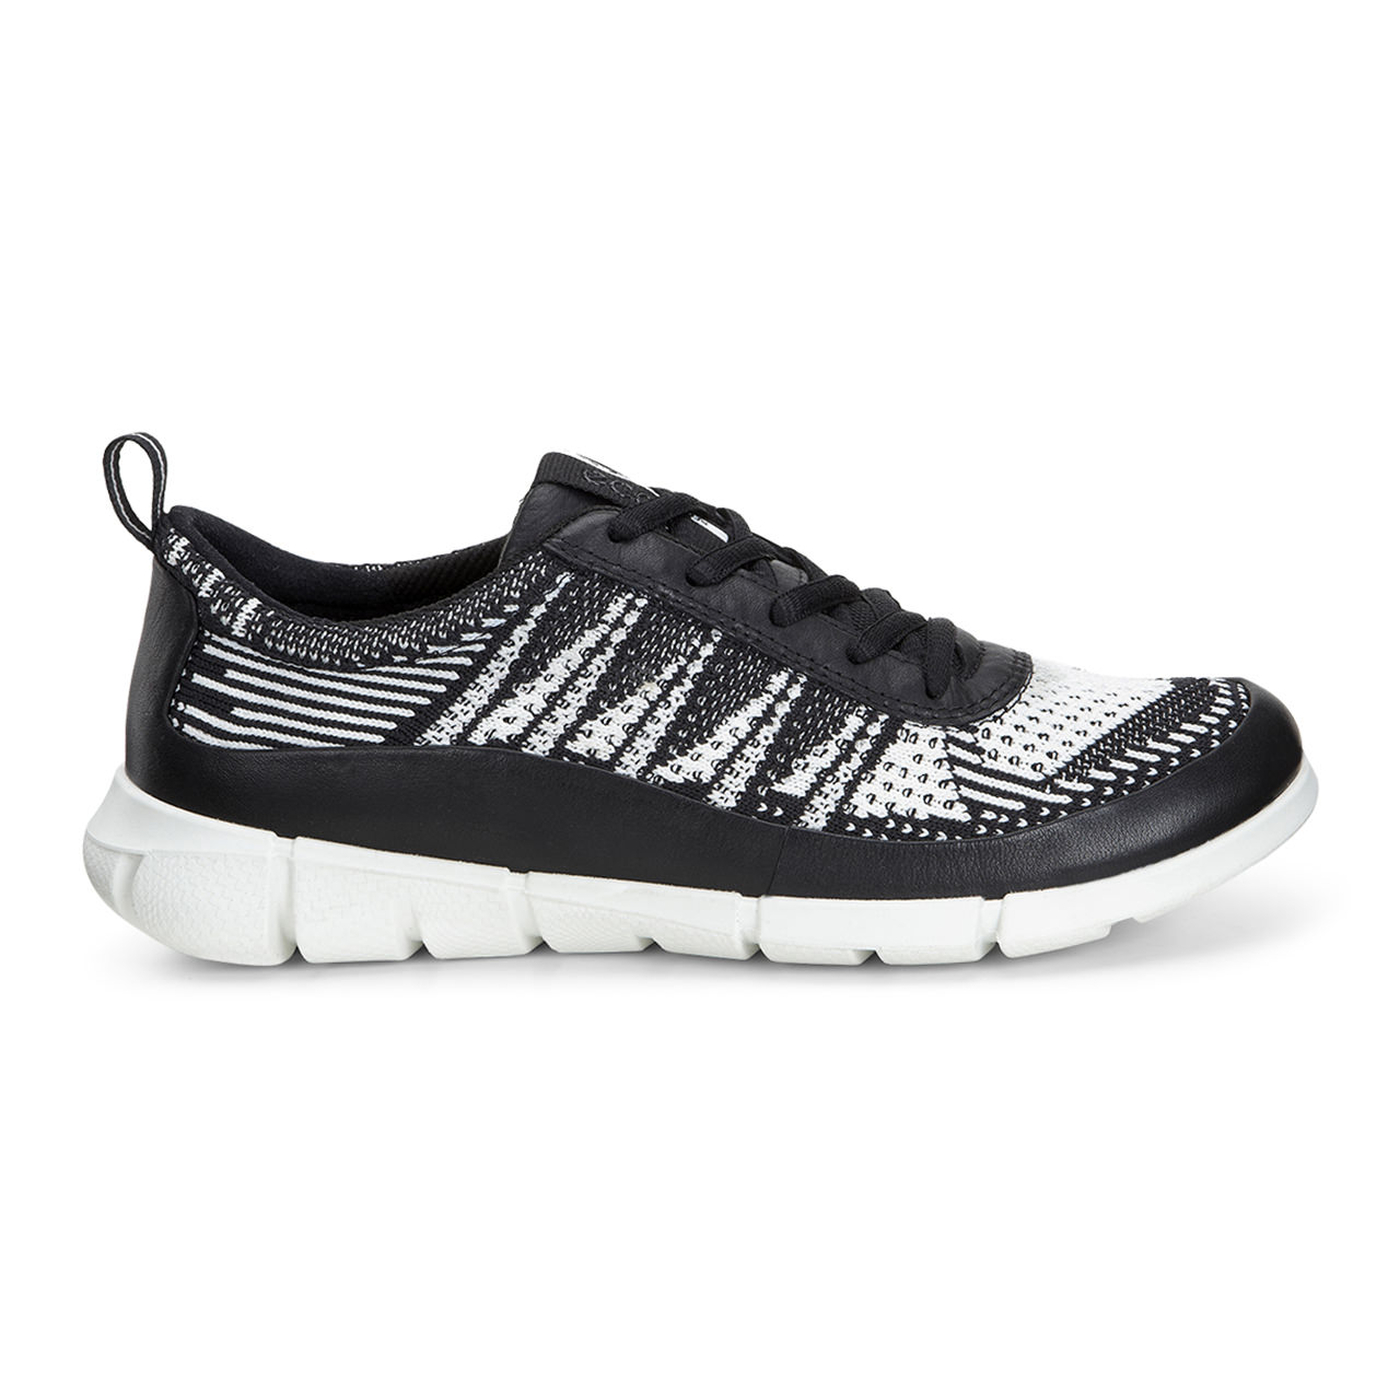 6b08f9f1ab ECCO Women's Intrinsic Knit | Sport | Shoes | ECCO® Shoes